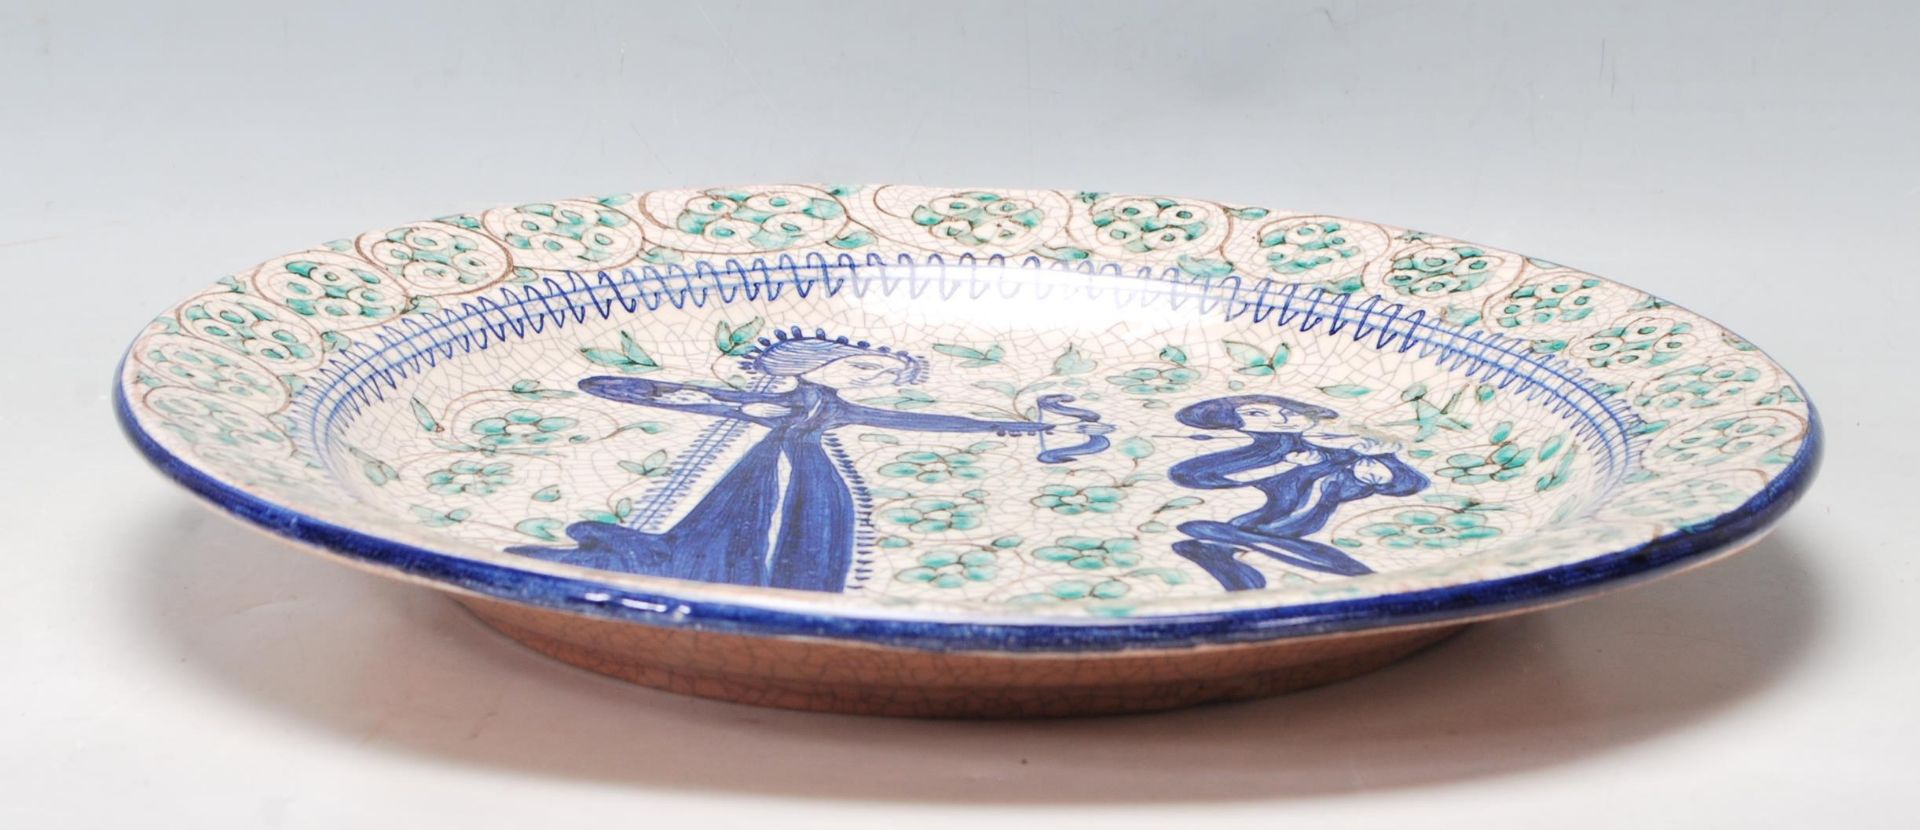 LATE 20TH CENTURY PERSIAN ISLAMIC FAIENCE CHARGER - Image 6 of 7